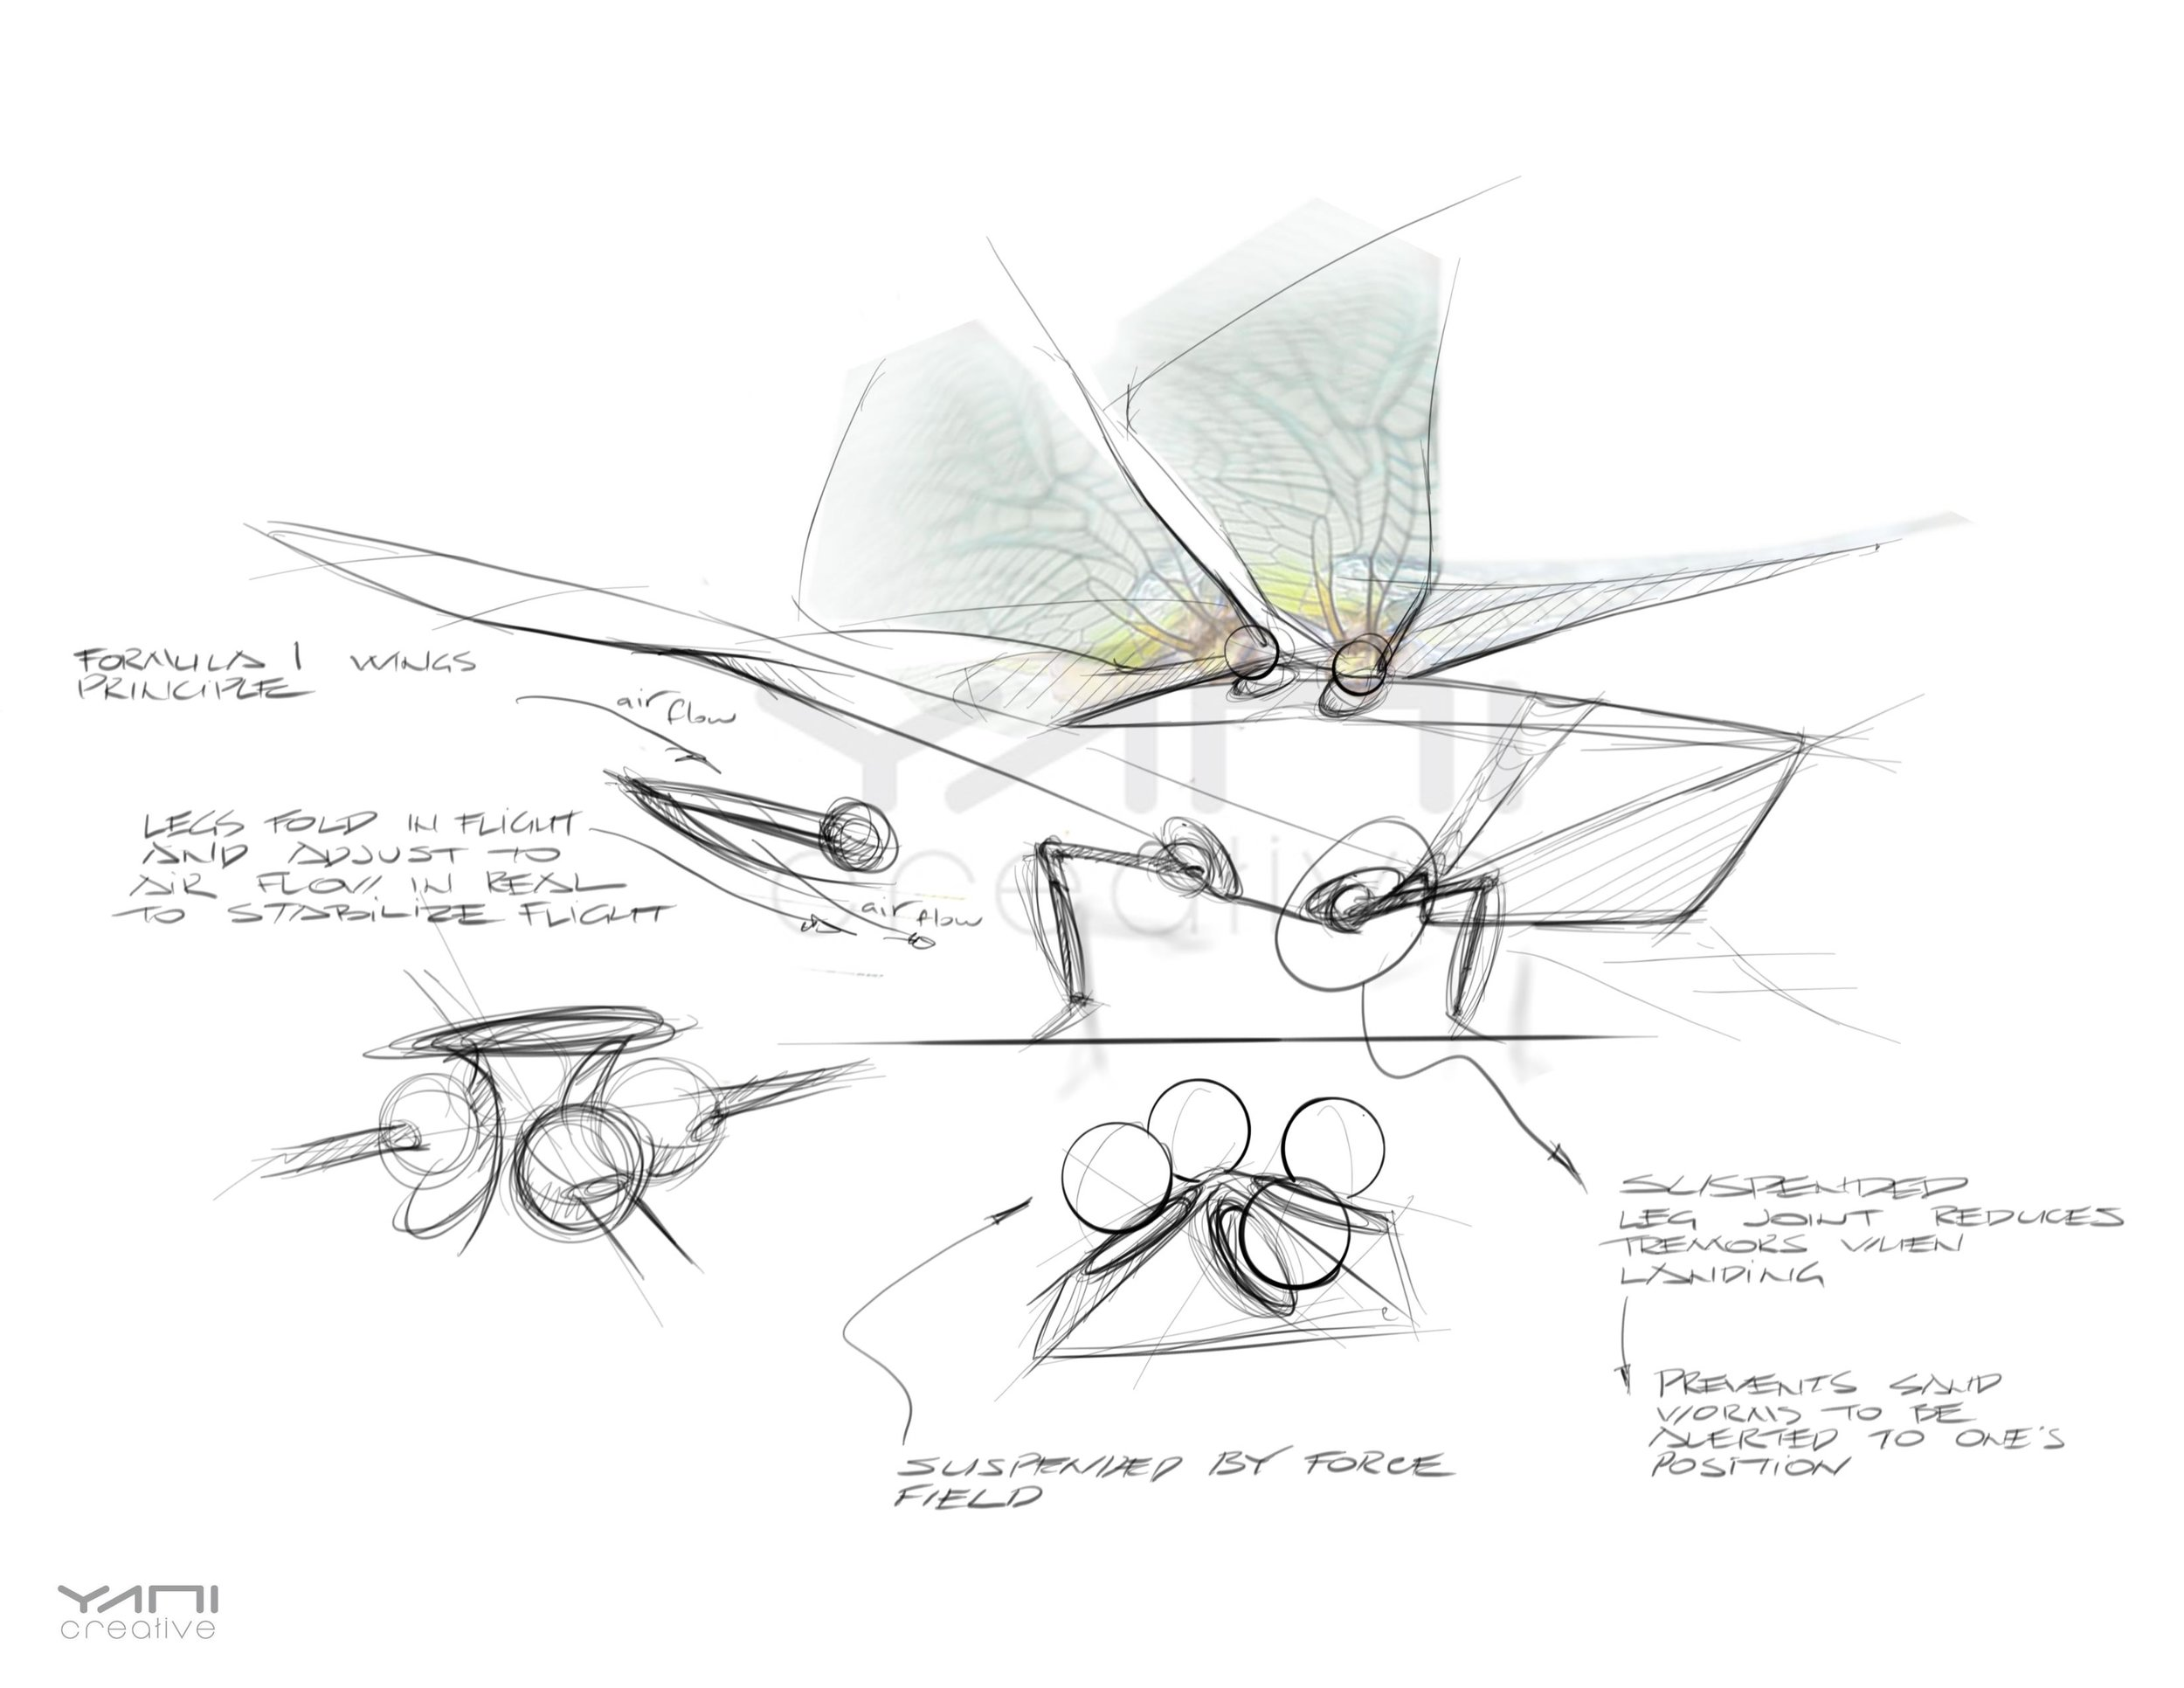 Dune_OrnithopterConcepts3.jpg